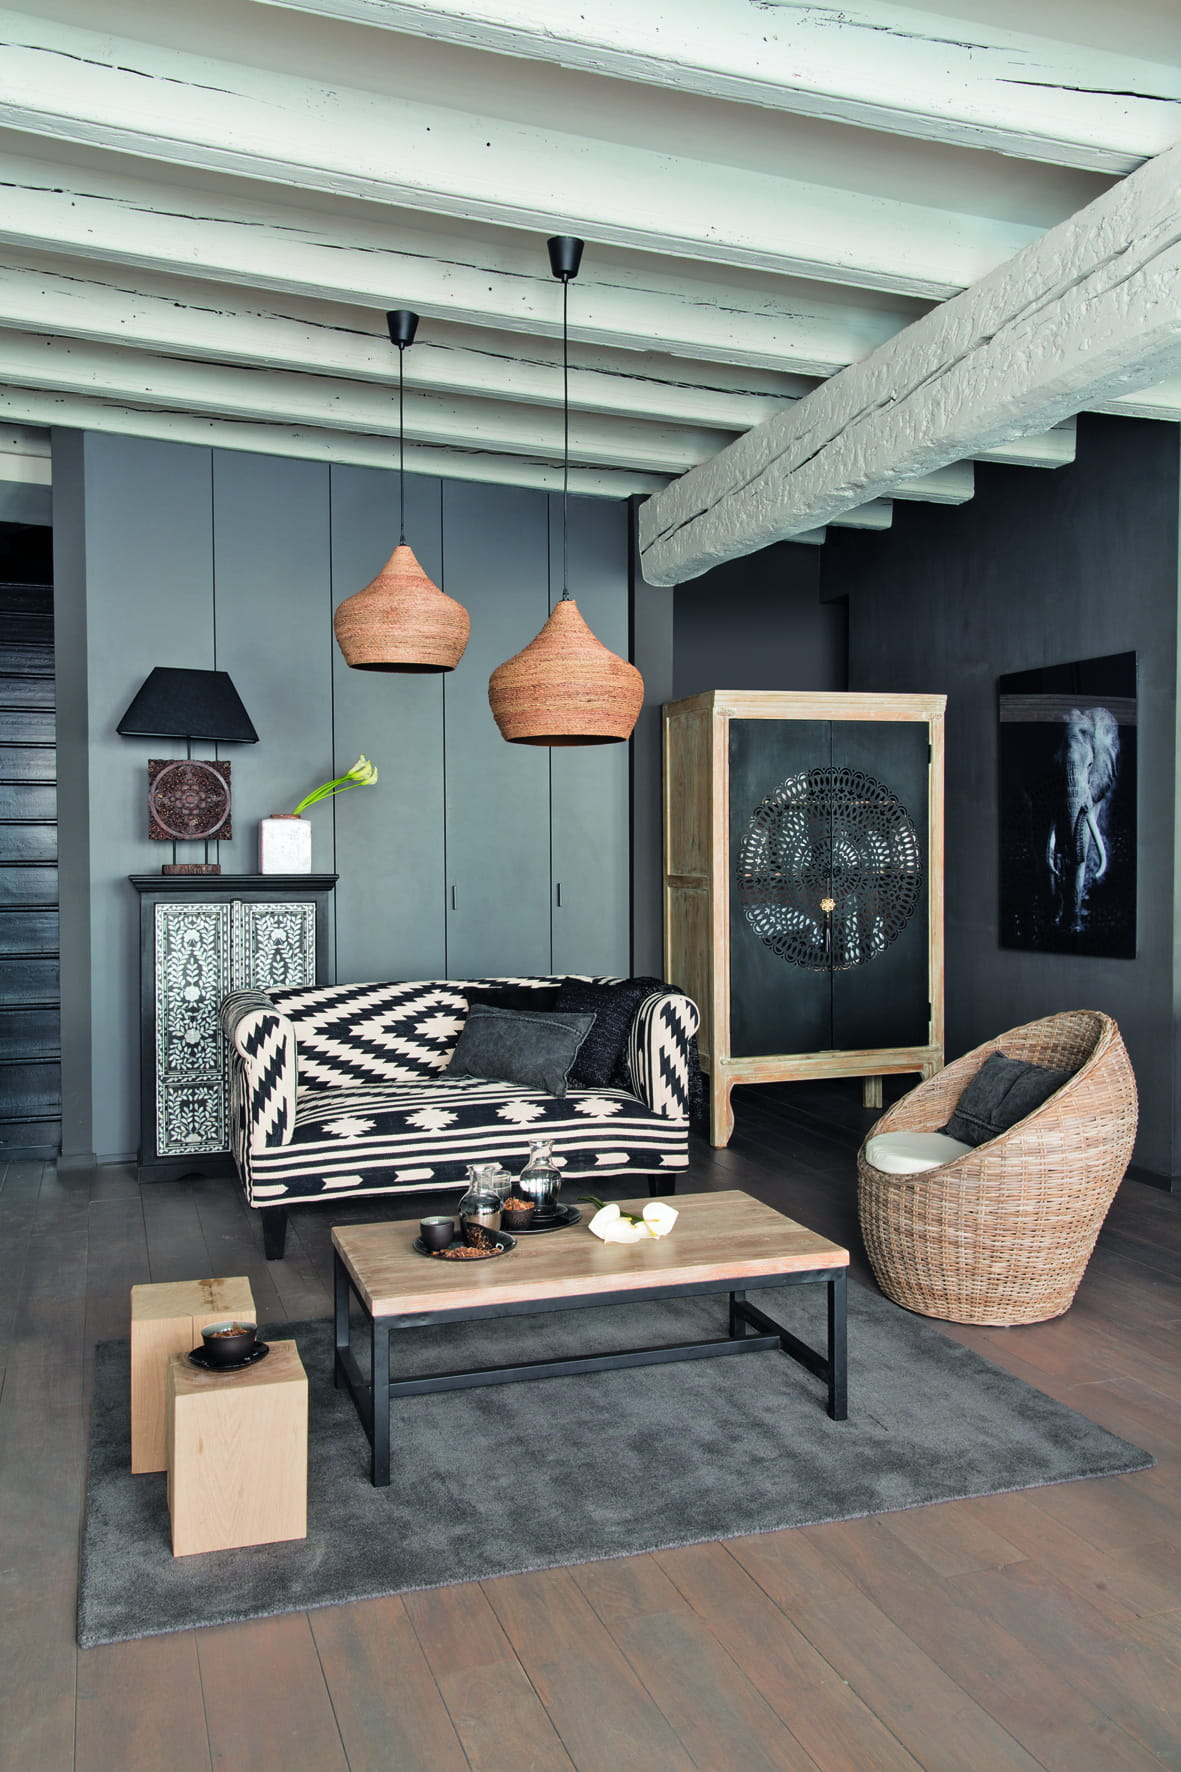 banquette tabriz de maisons du monde d co ethnique chic. Black Bedroom Furniture Sets. Home Design Ideas